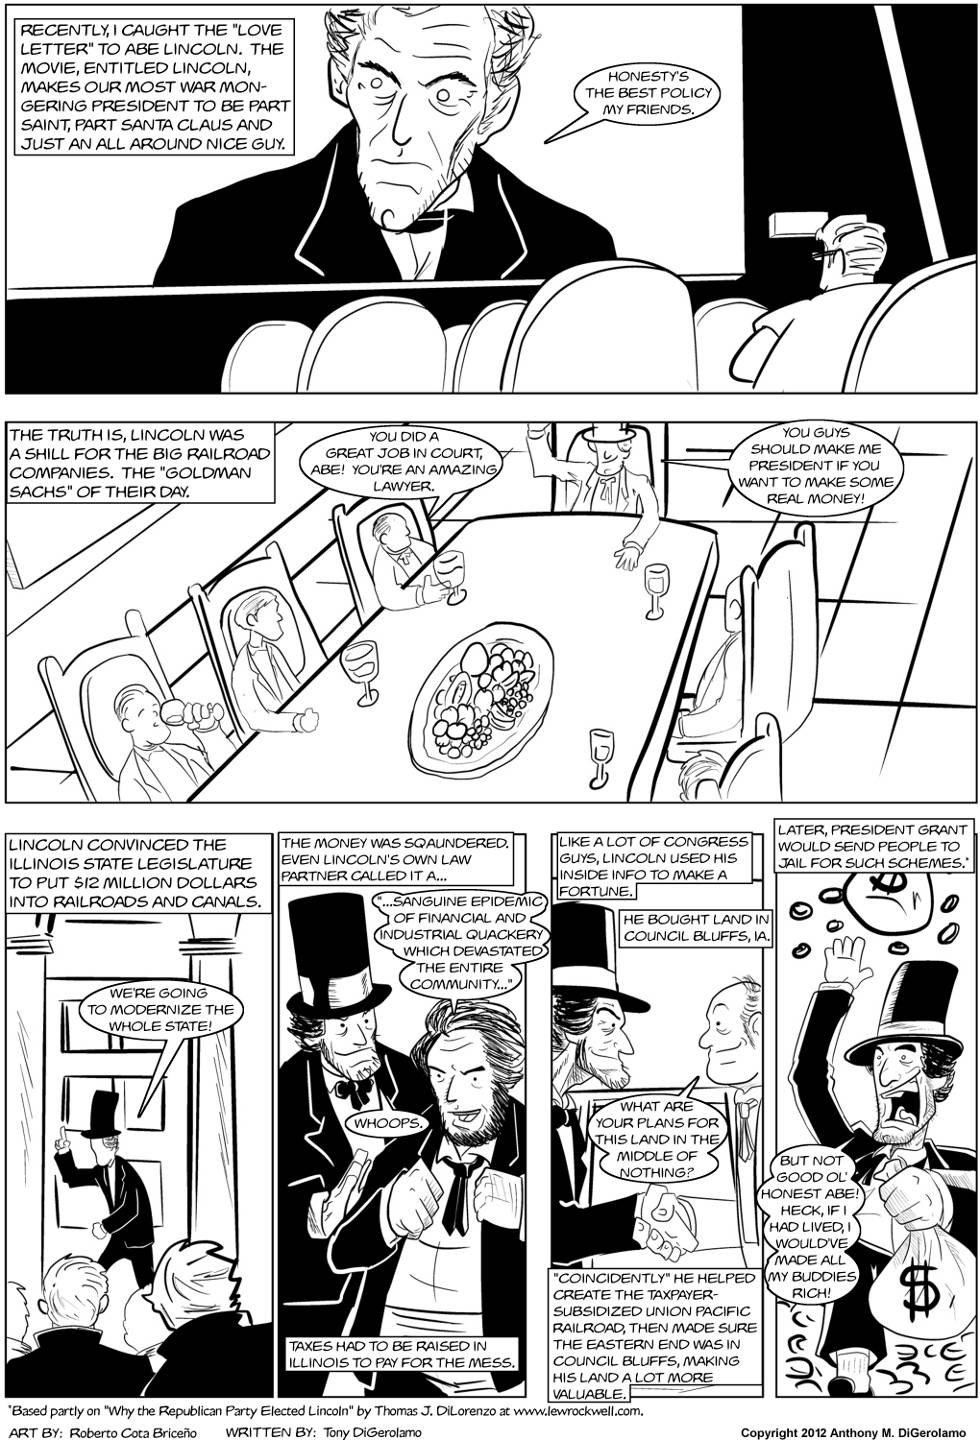 The Antiwar Comic:  Lincoln was a Rich Jerk